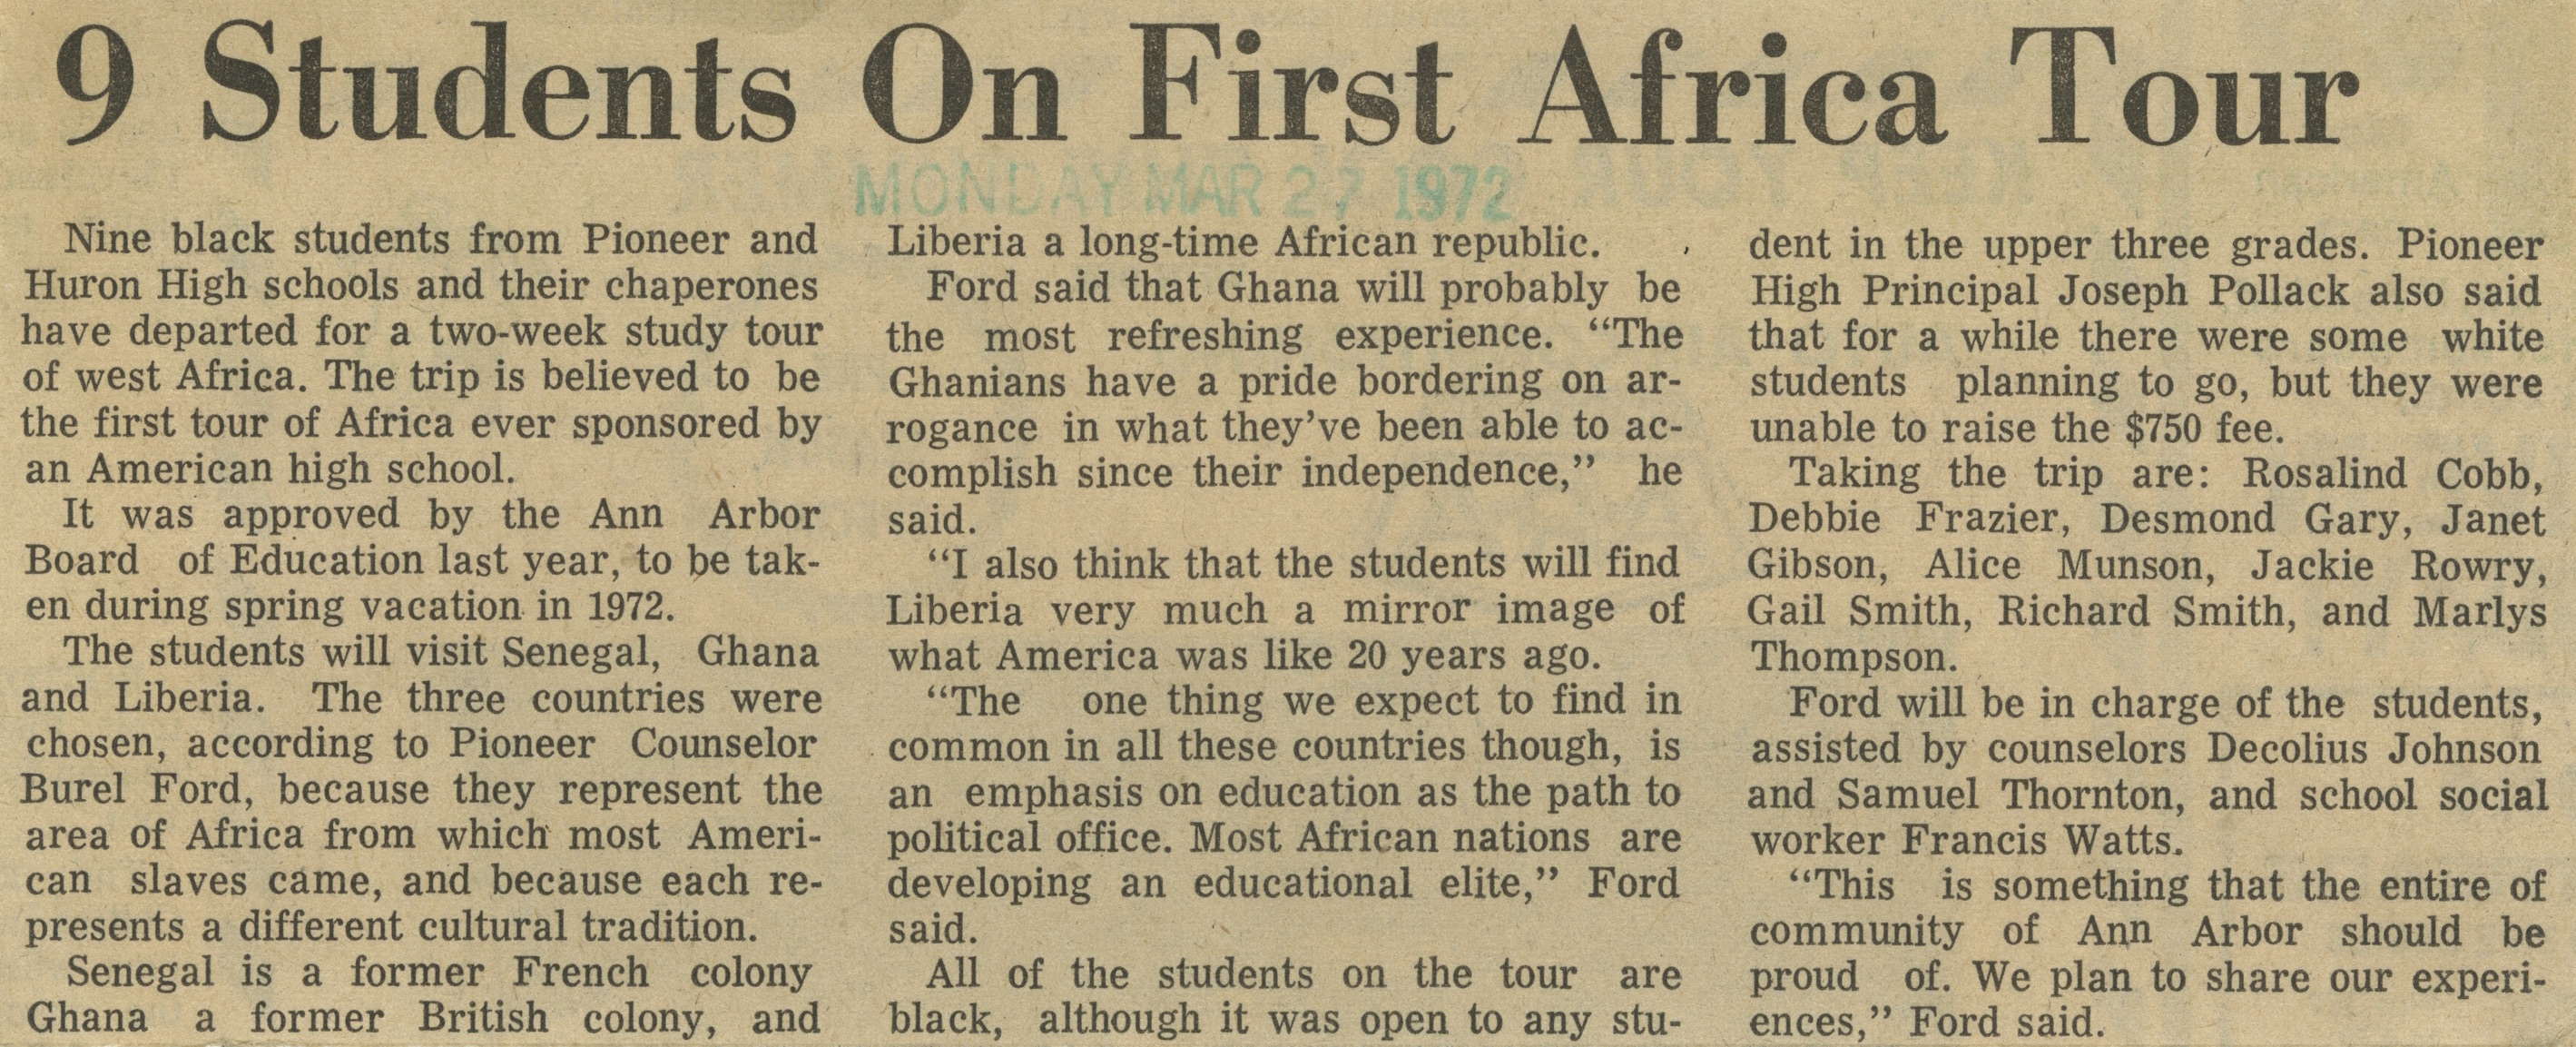 9 Students On First Africa Tour image